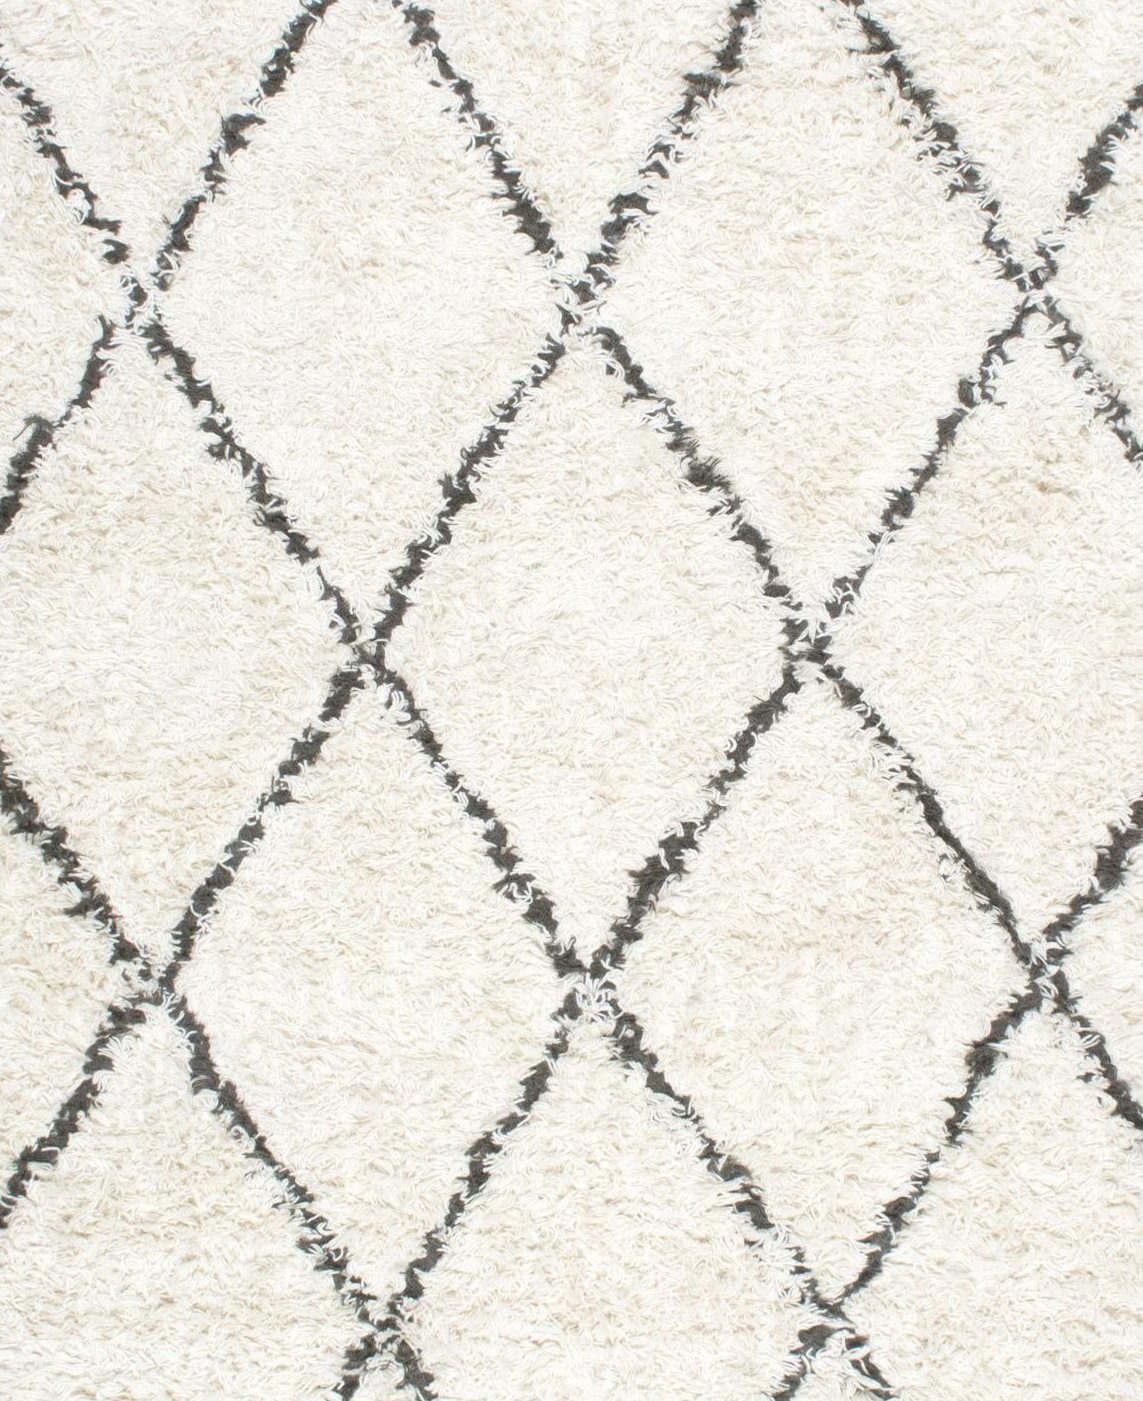 Top 5 Living Room Rugs: Buying Guide & Reviews 18